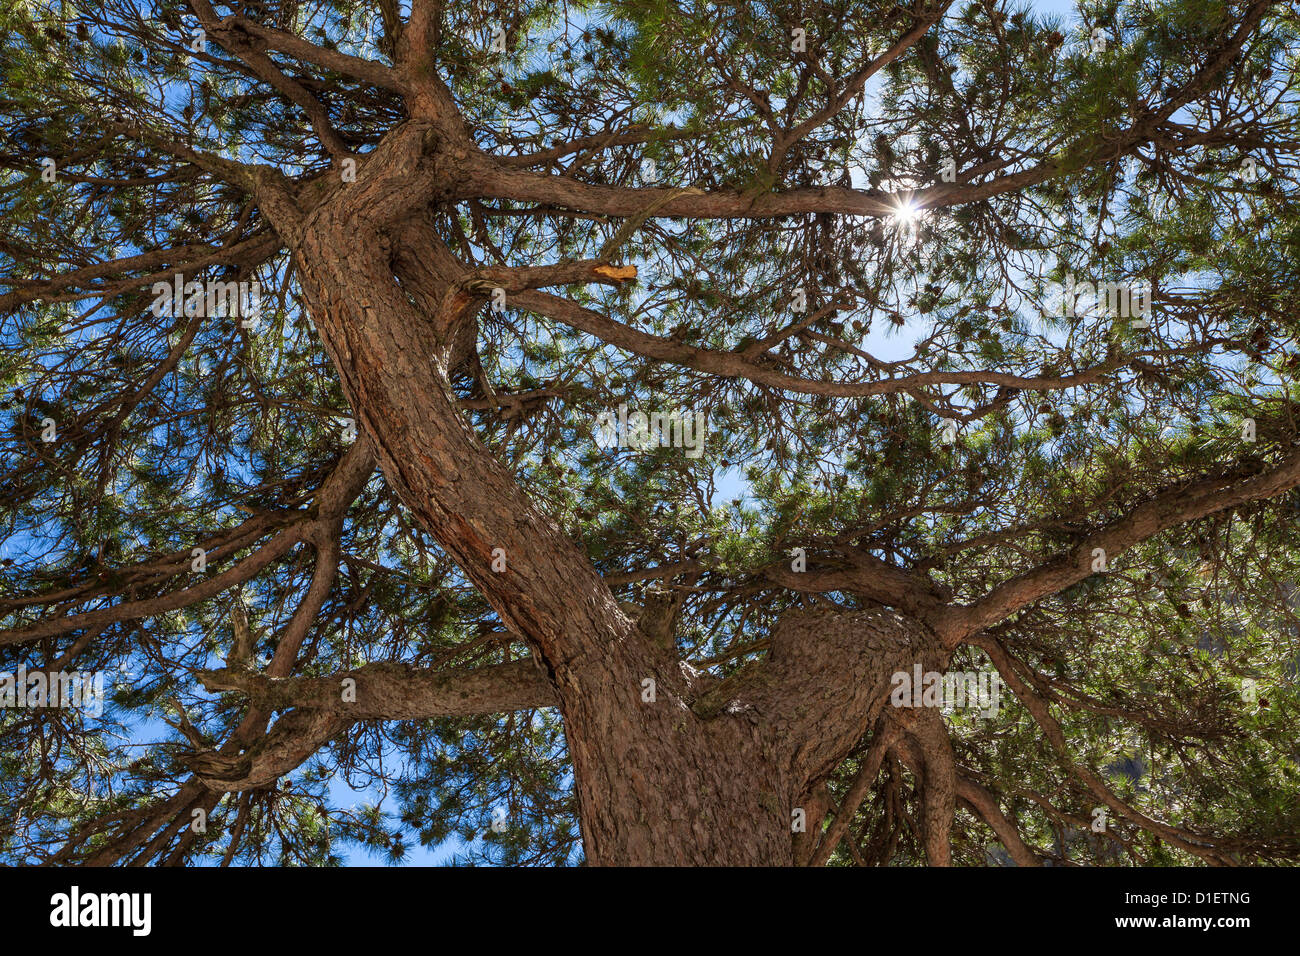 Pine tree in the Restonica Valley, Corsica, France - Stock Image